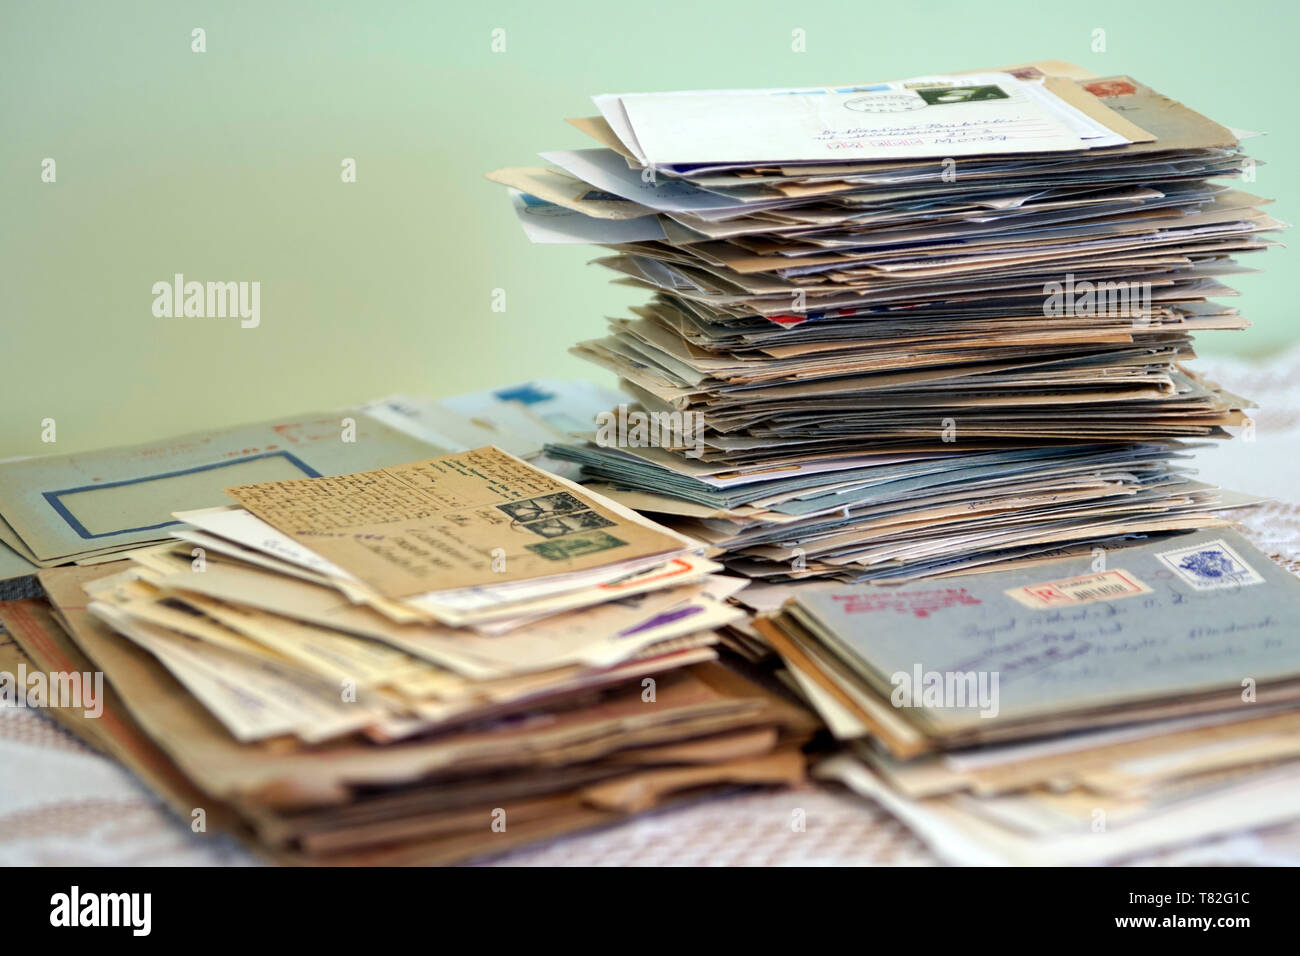 Dozens of old letters in close-up. Old letters lying in a mess. Alte Briefe in Unordnung liegen. Dutzende alter Briefe in Nahaufnahme. Stare listy. Stock Photo